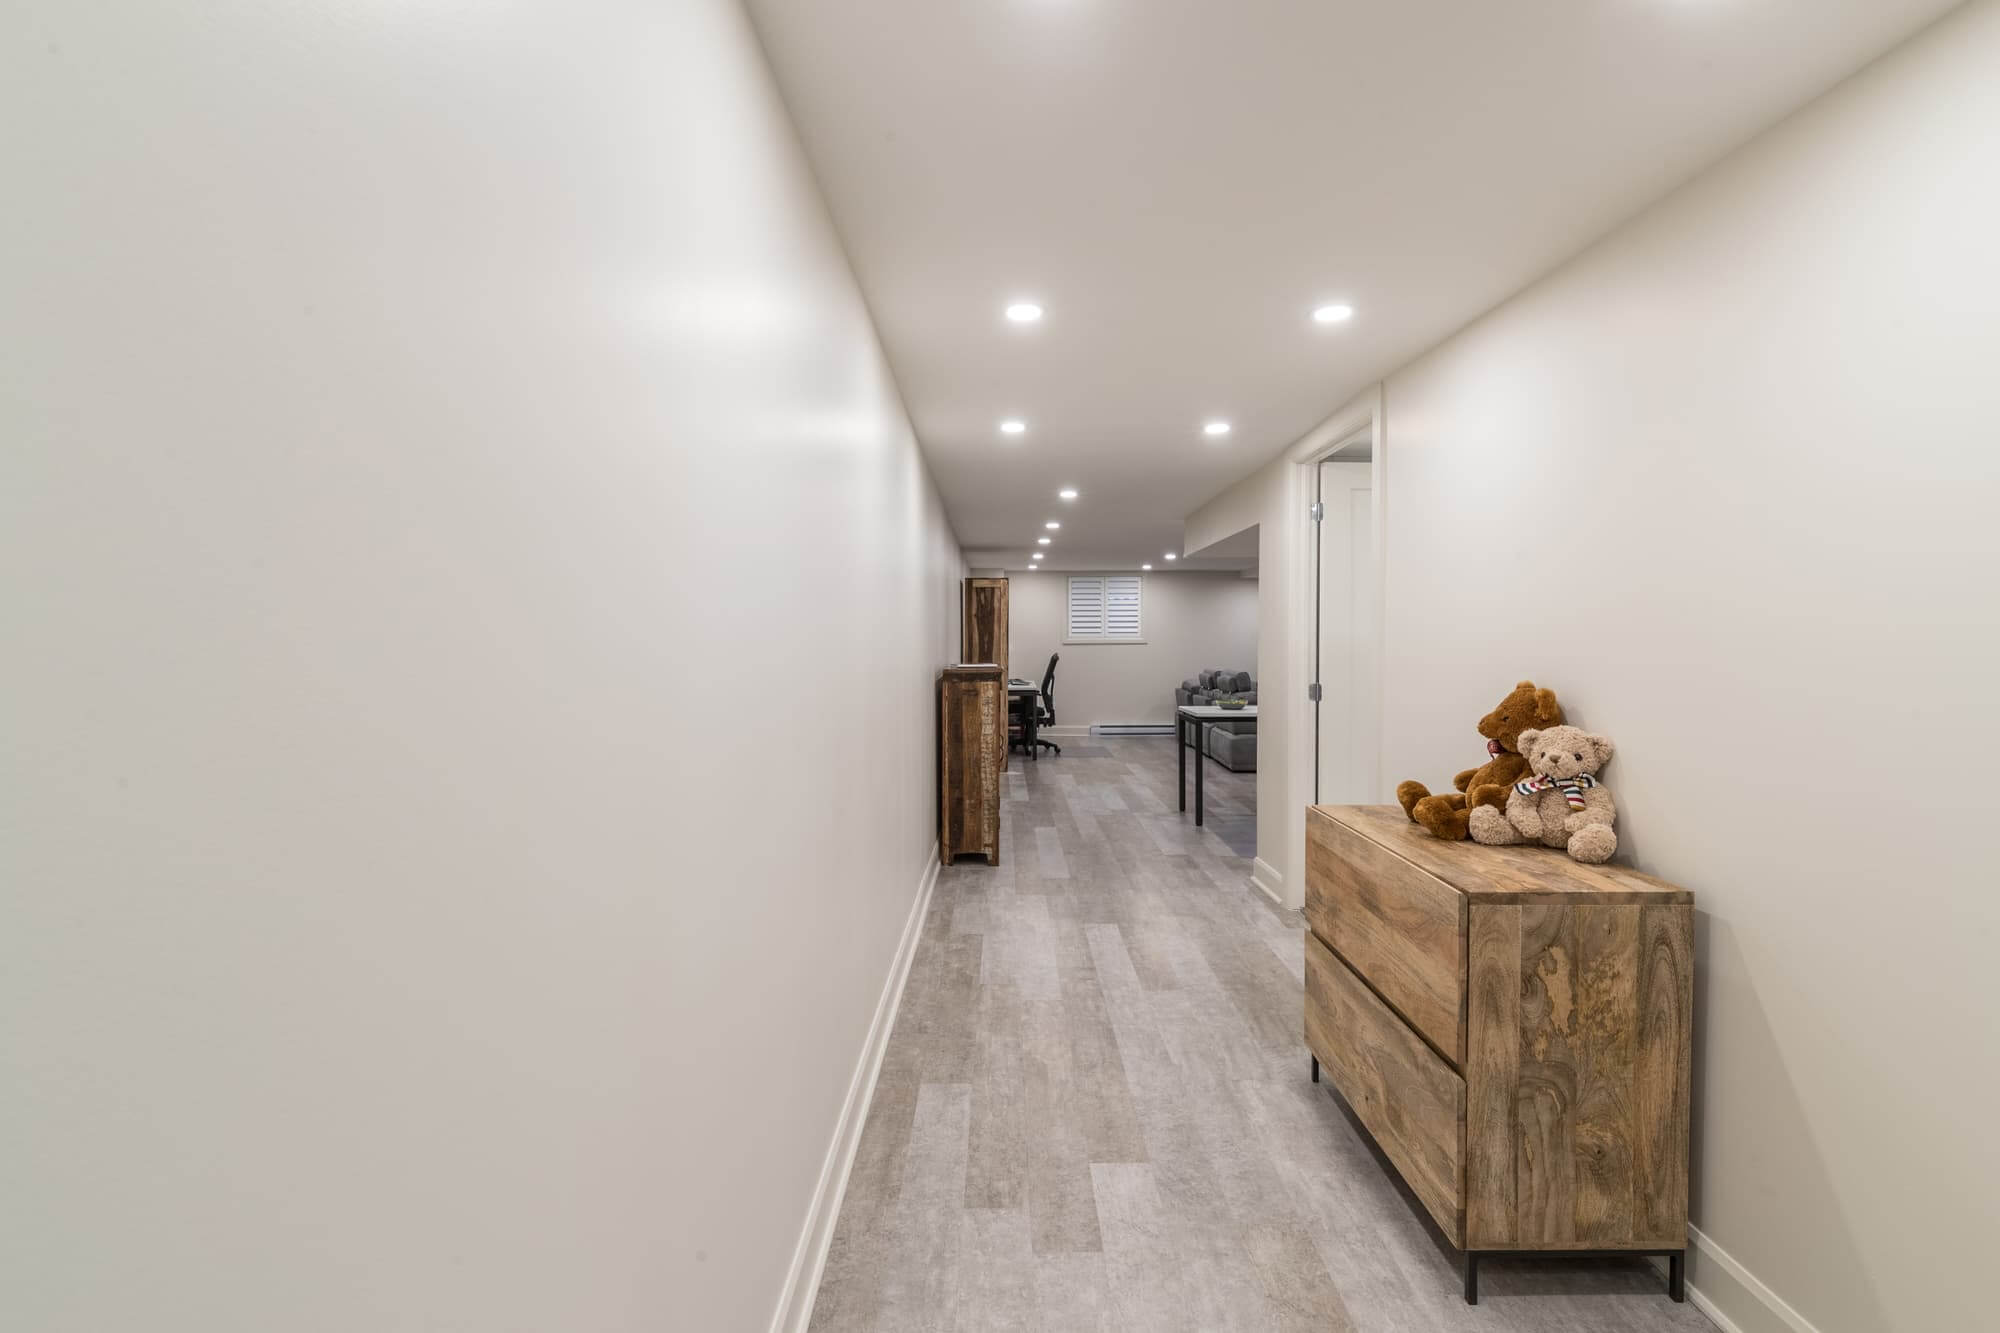 Modern basement design with beige walls and grey floating floor - RenoAssistance